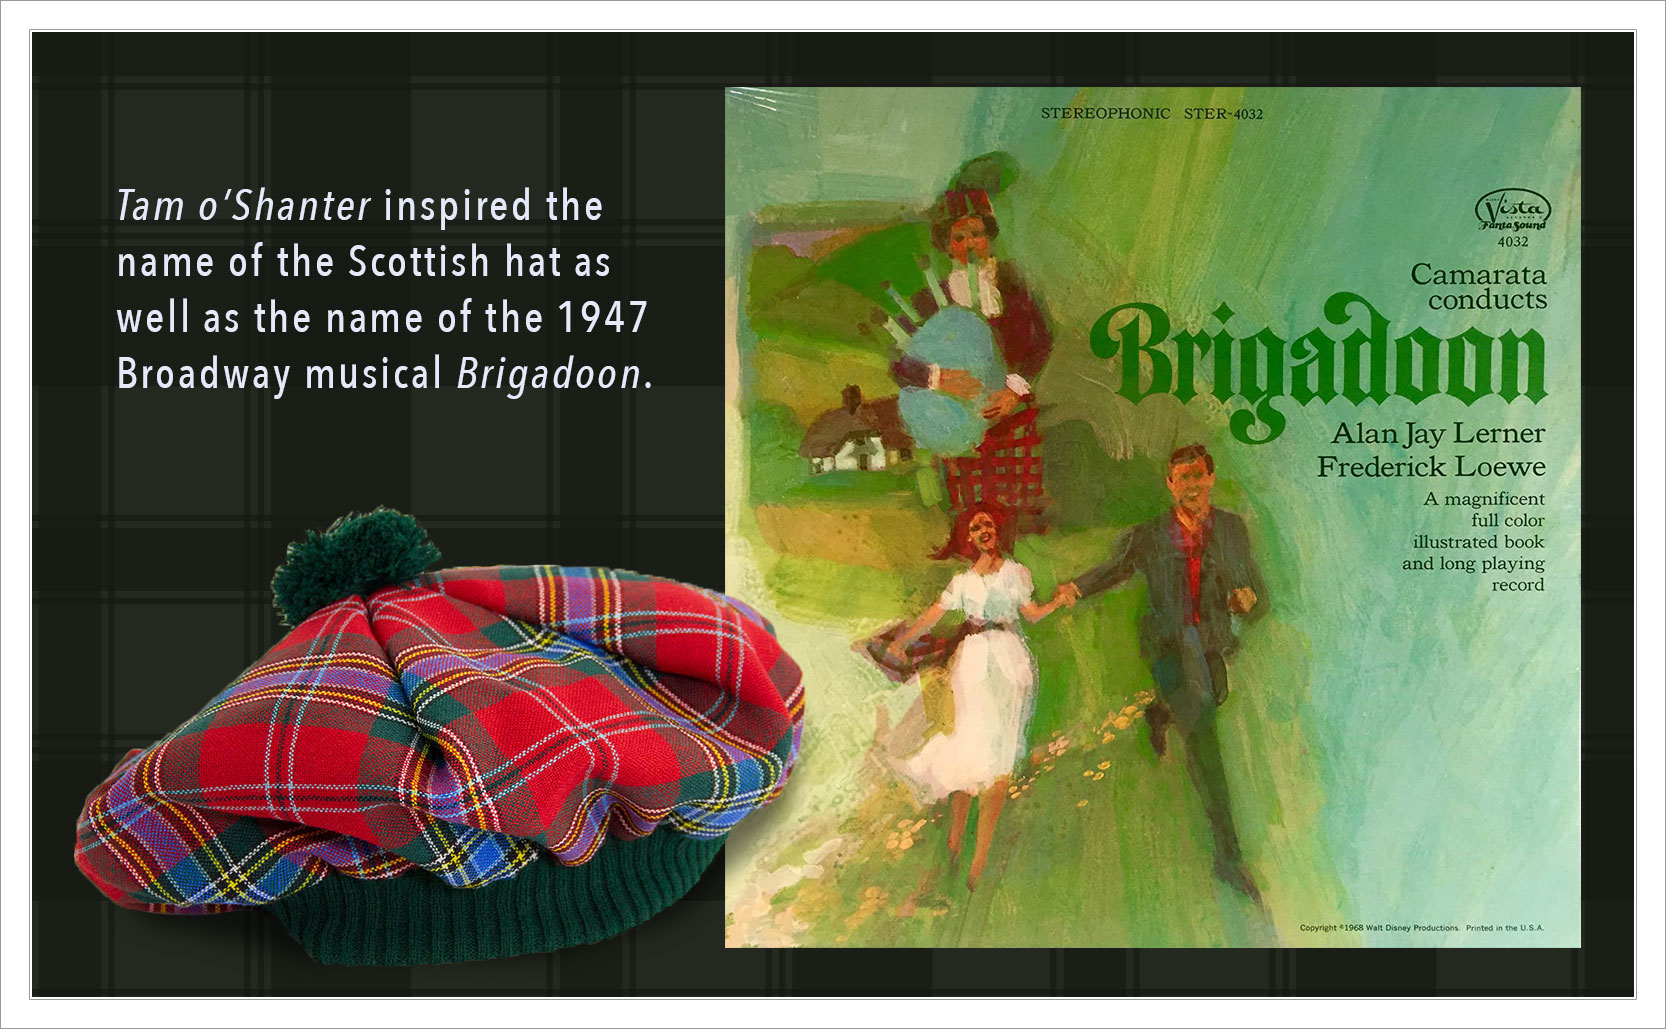 Tam o'Shanter inspired the name of the Scottish hat as well as the name of the 1947 Broadway musical Brigadoon. In this image is the Tam o'Shanter hat and the Brigadoon record cover.